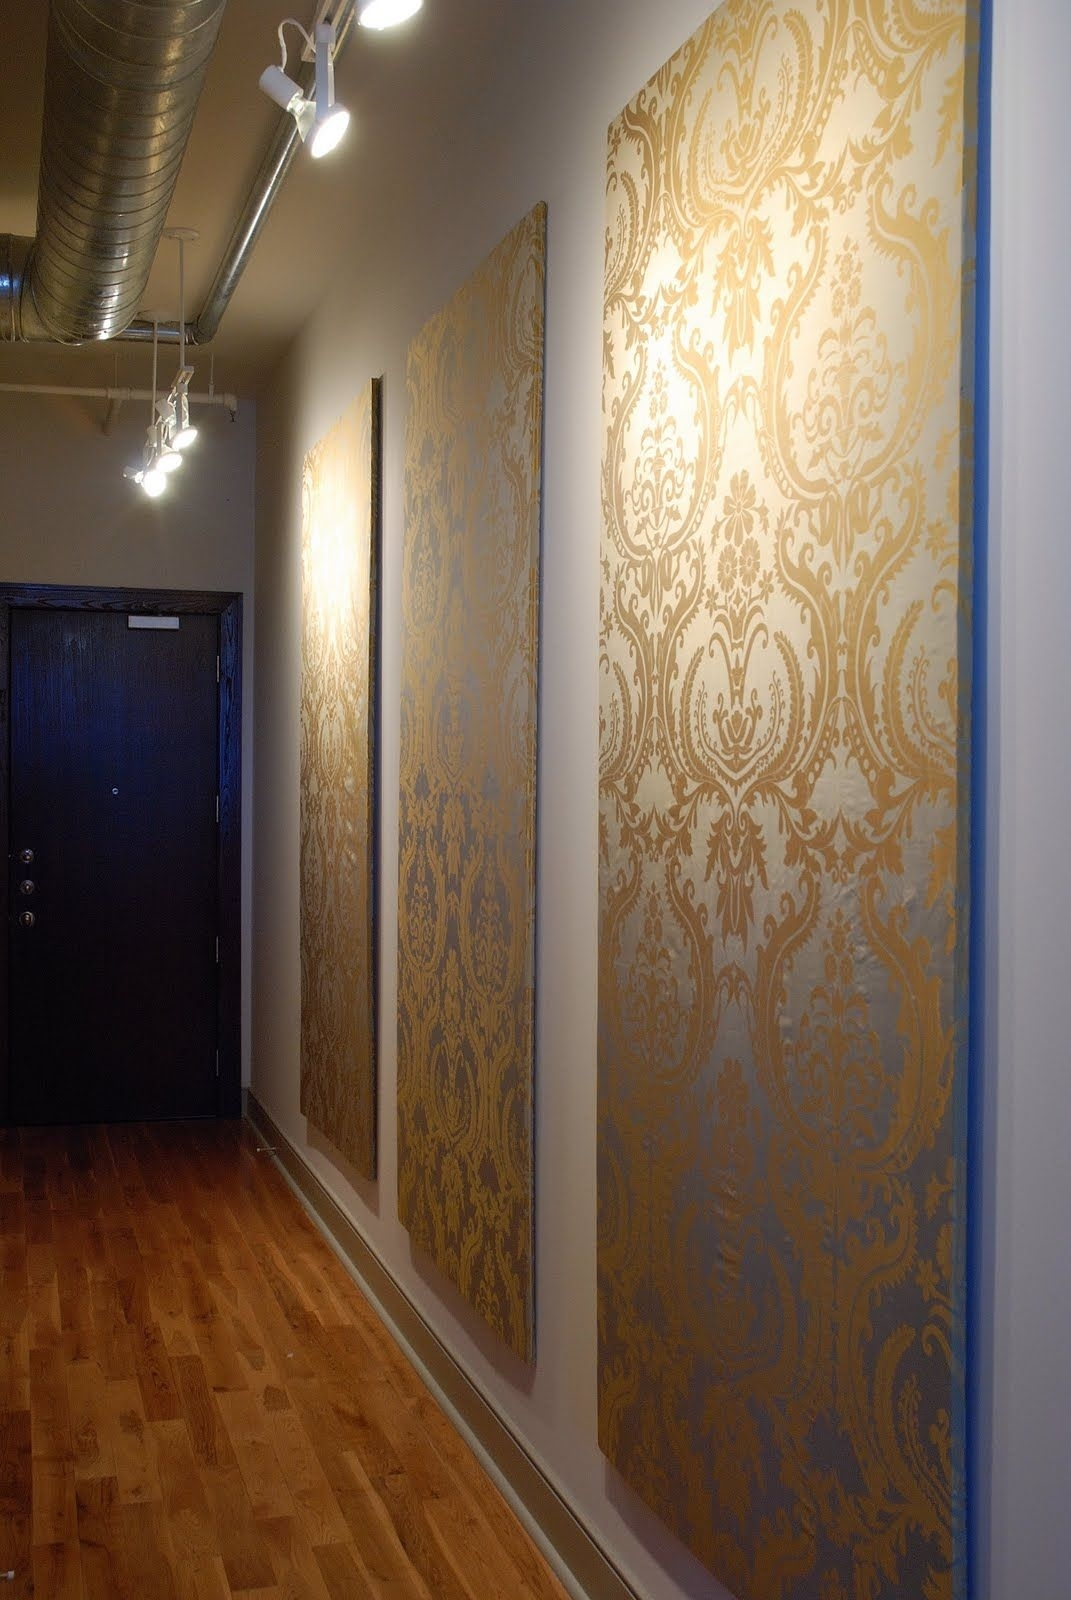 Temporary Wall Coverings: 7 Great Ideas For When You Can't Paint Pertaining To 2017 Damask Fabric Wall Art (View 13 of 15)